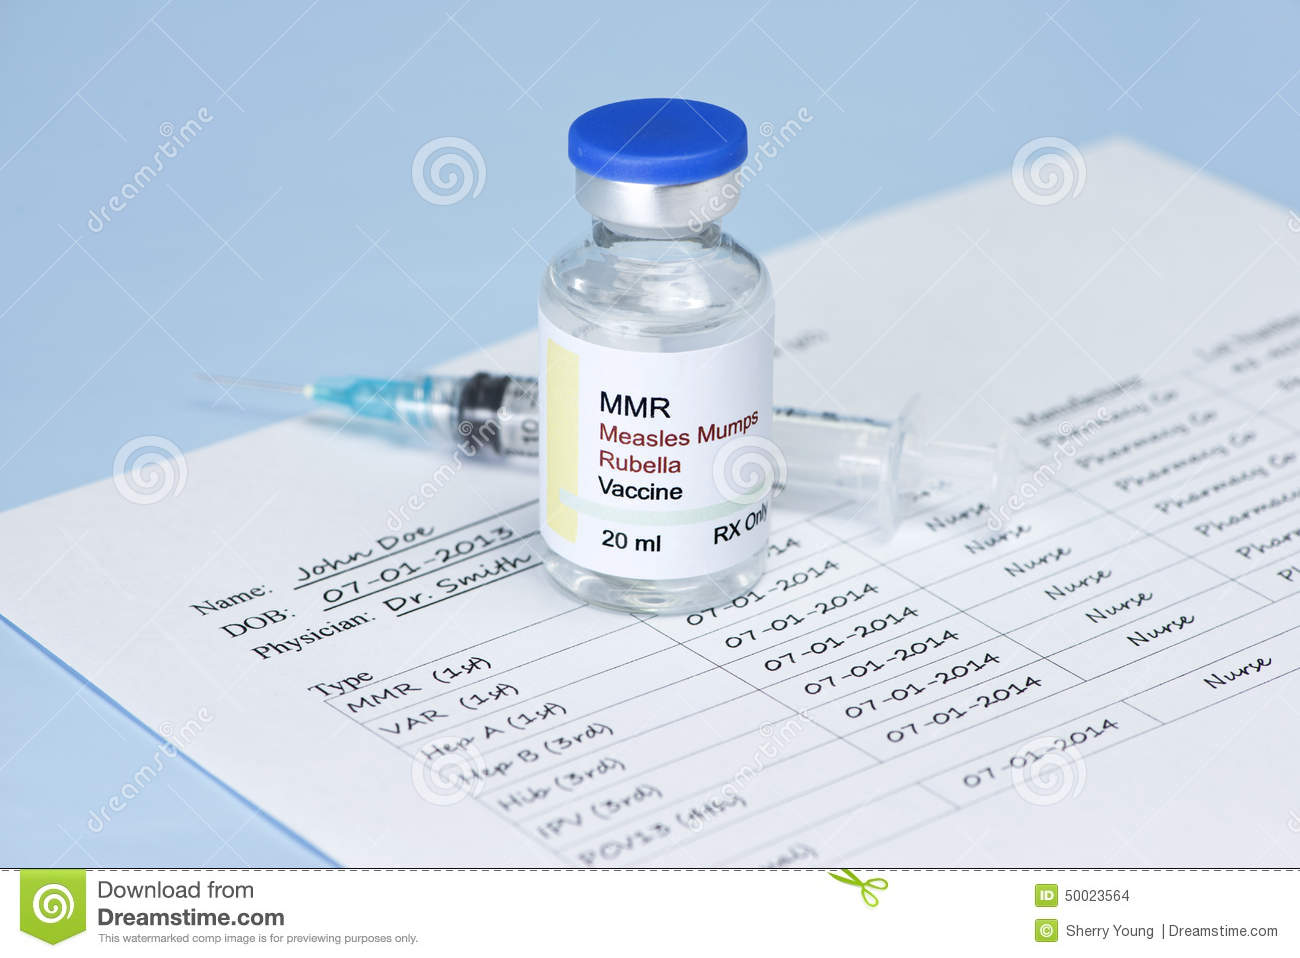 a description of the measles mumps and rubella vaccine Measles, mumps & rubella virus vaccine, live information from drugscom, includes measles, mumps & rubella virus vaccine, live side effects, interactions, indications.